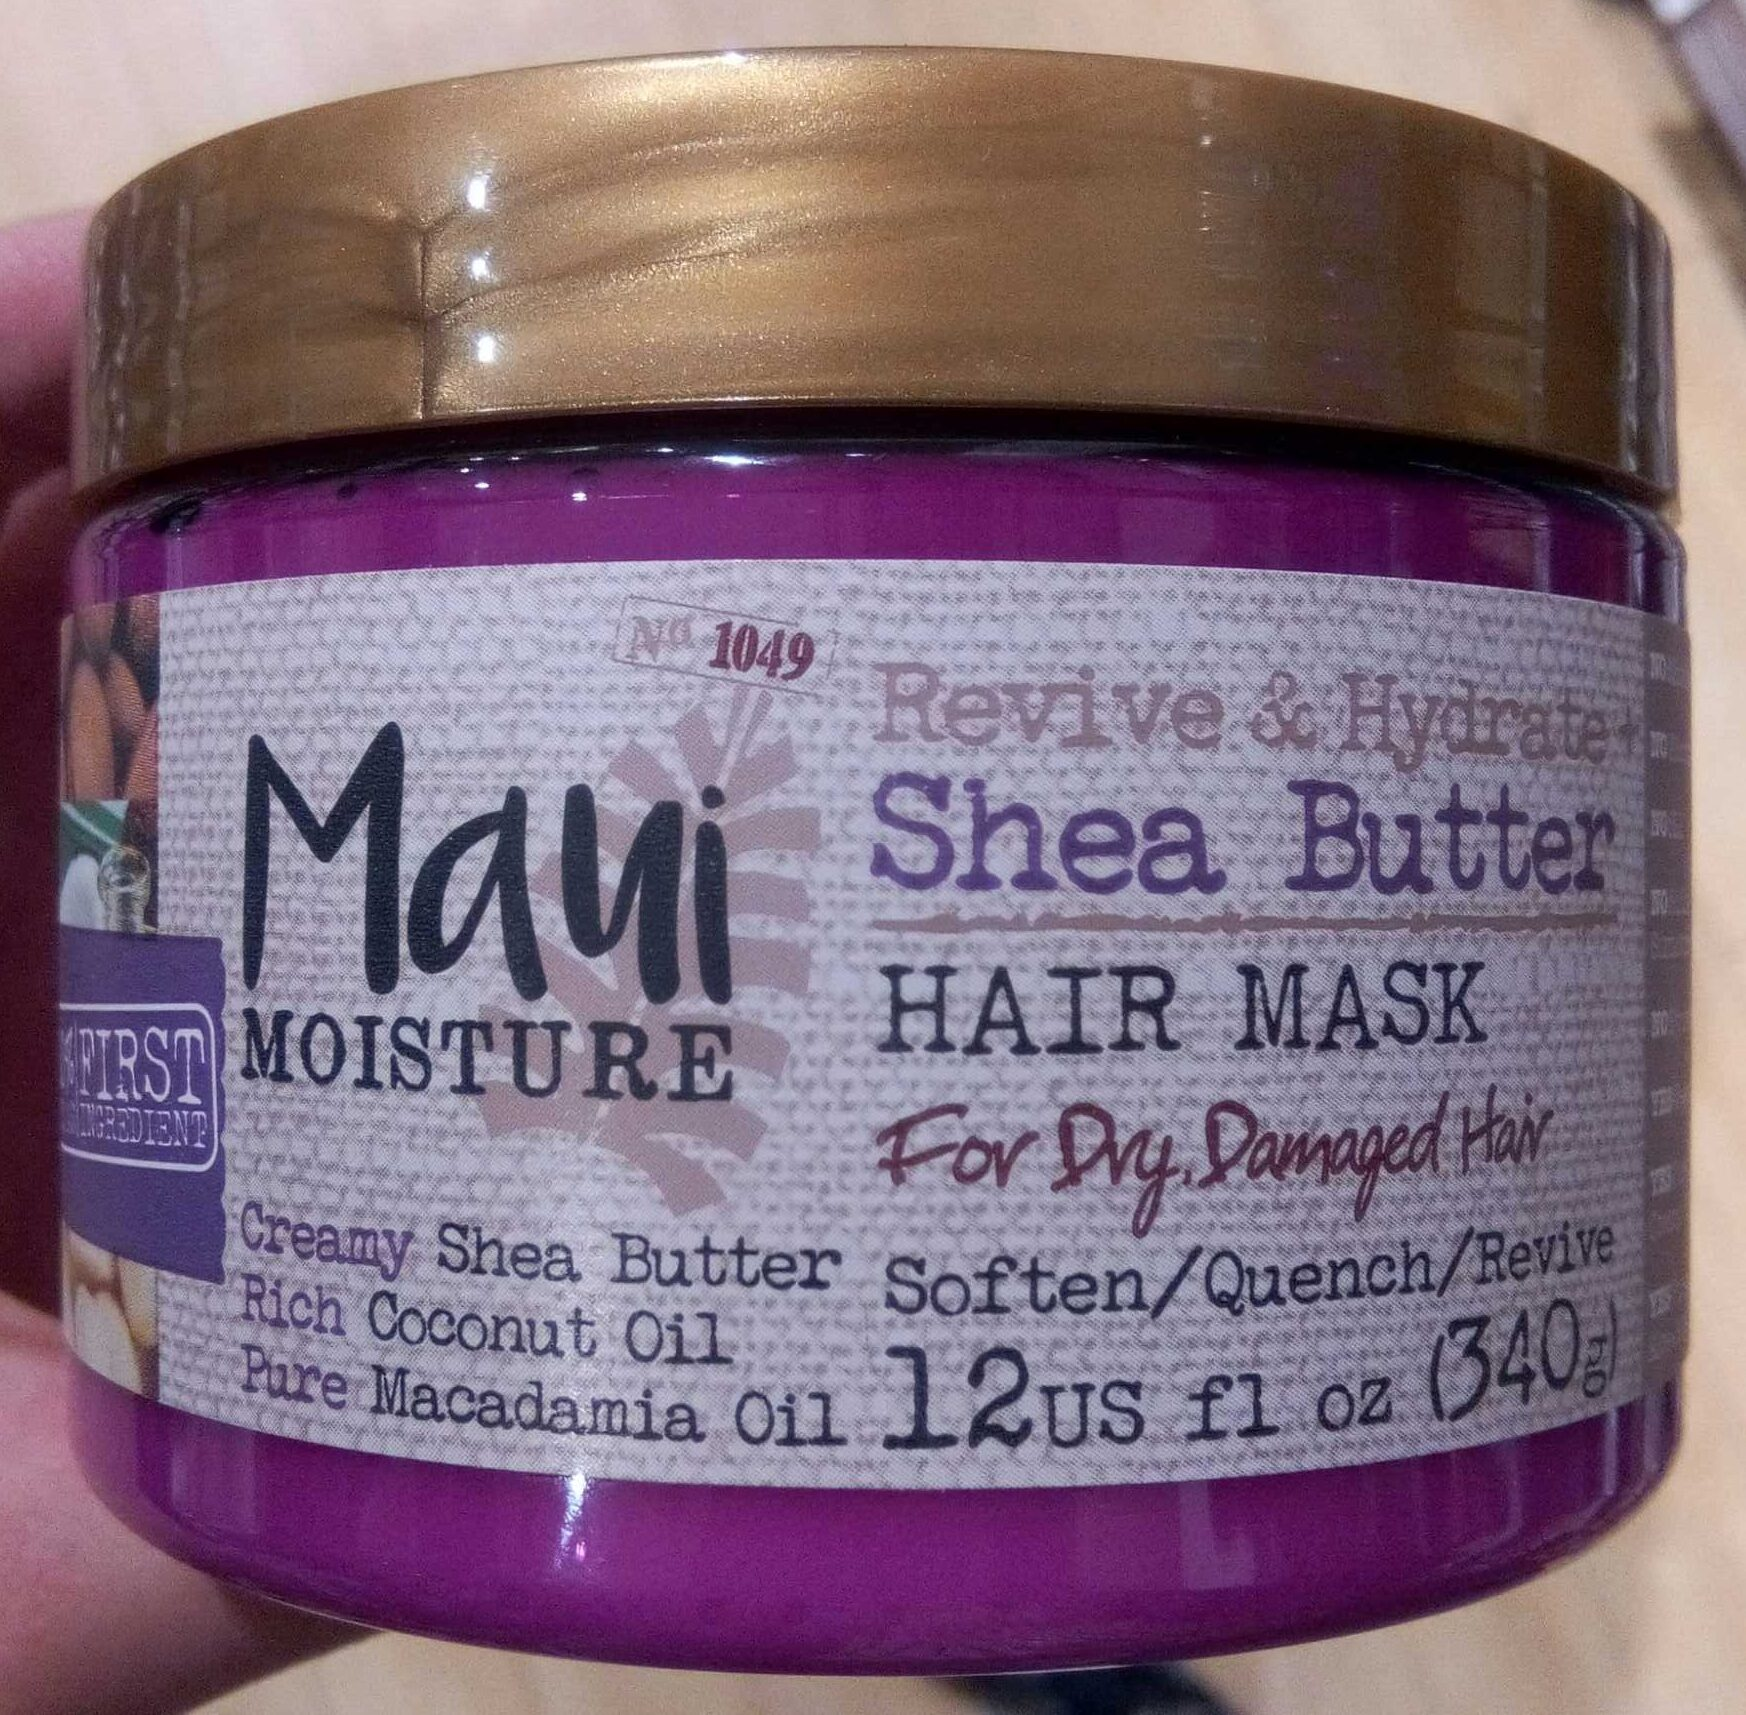 Shea butter hair mask - Product - fr